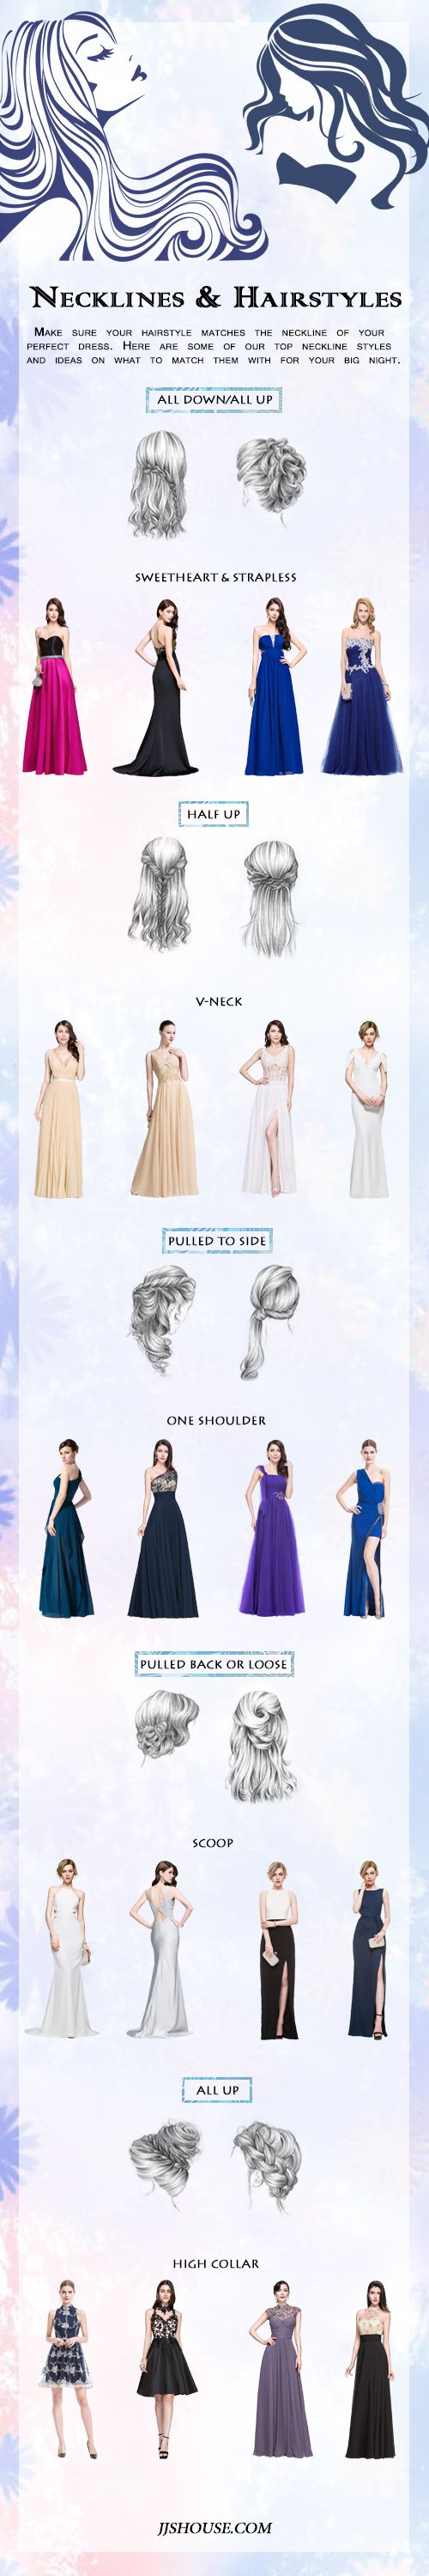 [Necklines & Hairstyles] Make sure your hairstyle matches the neckline of your perfect derss. Here are some of our top neckline styles and ideas on what to match them with for your big night. #JJsHouse